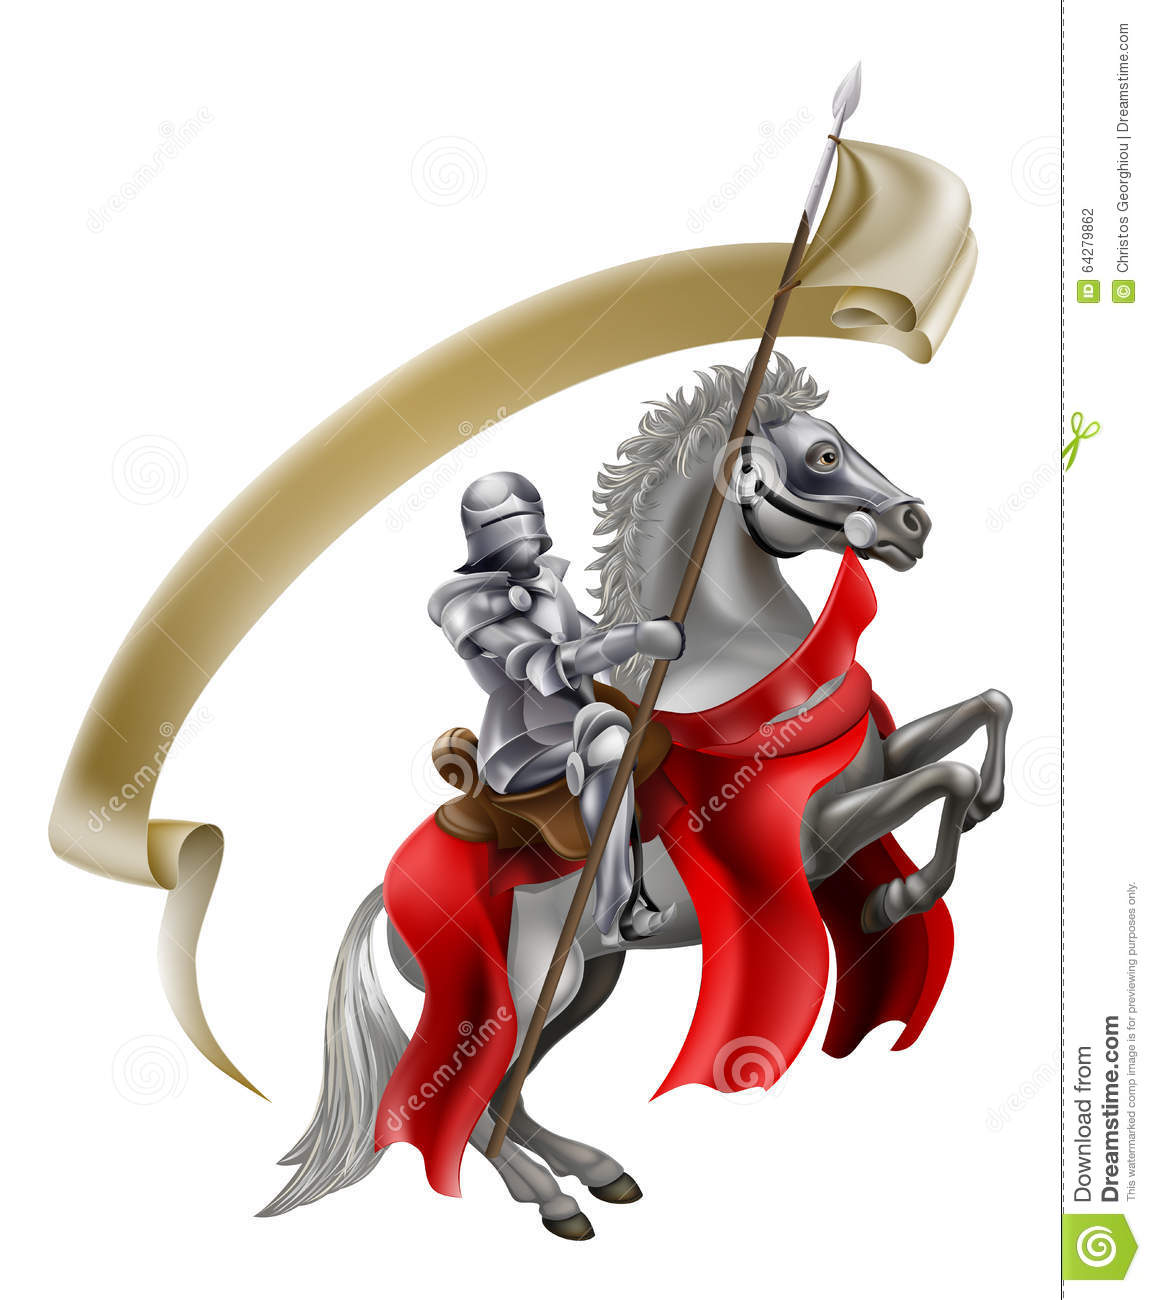 Medieval Spear Knight On Horse Stock Vector Illustration Of Cartoon Metal 64279862